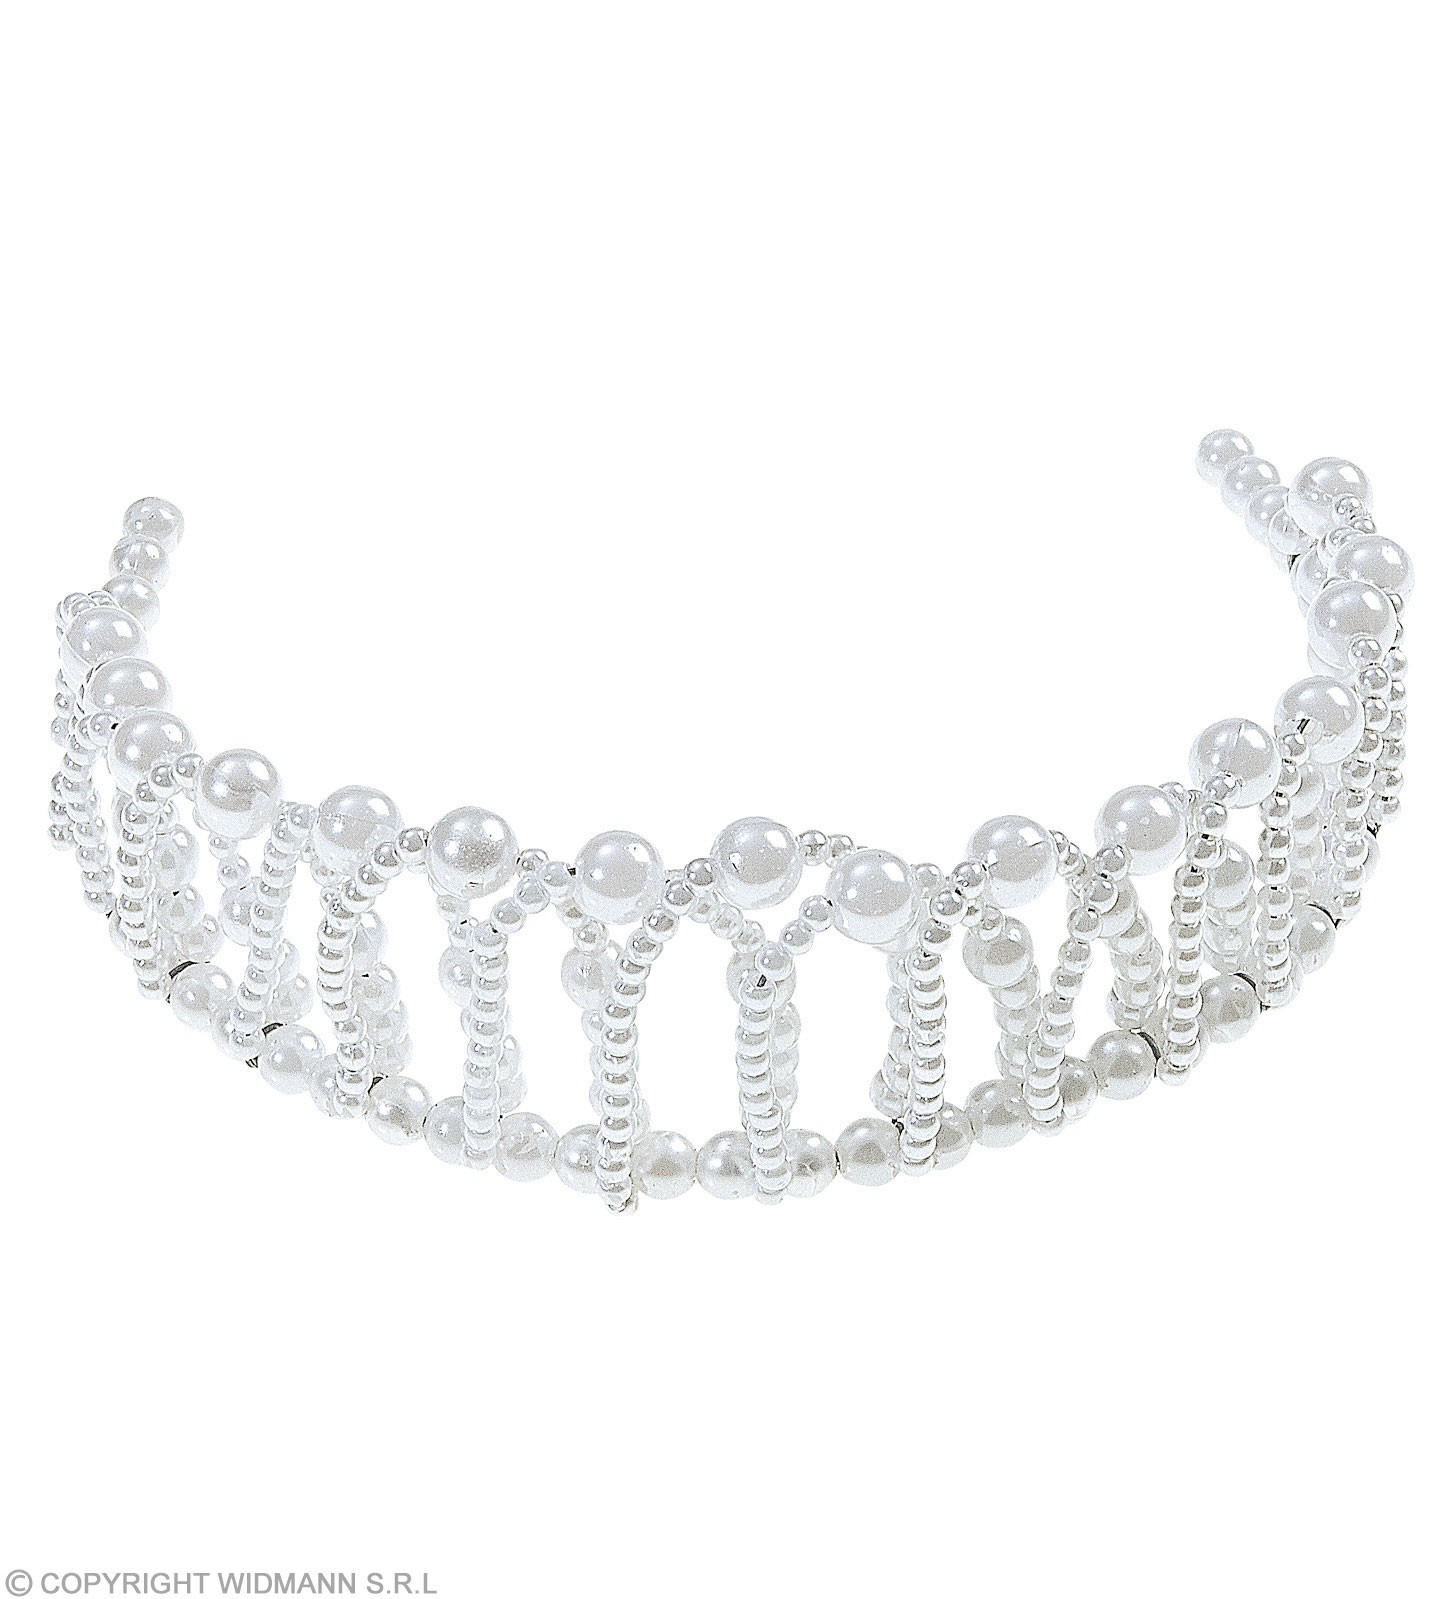 Bendable Pearl Crowns - Fancy Dress